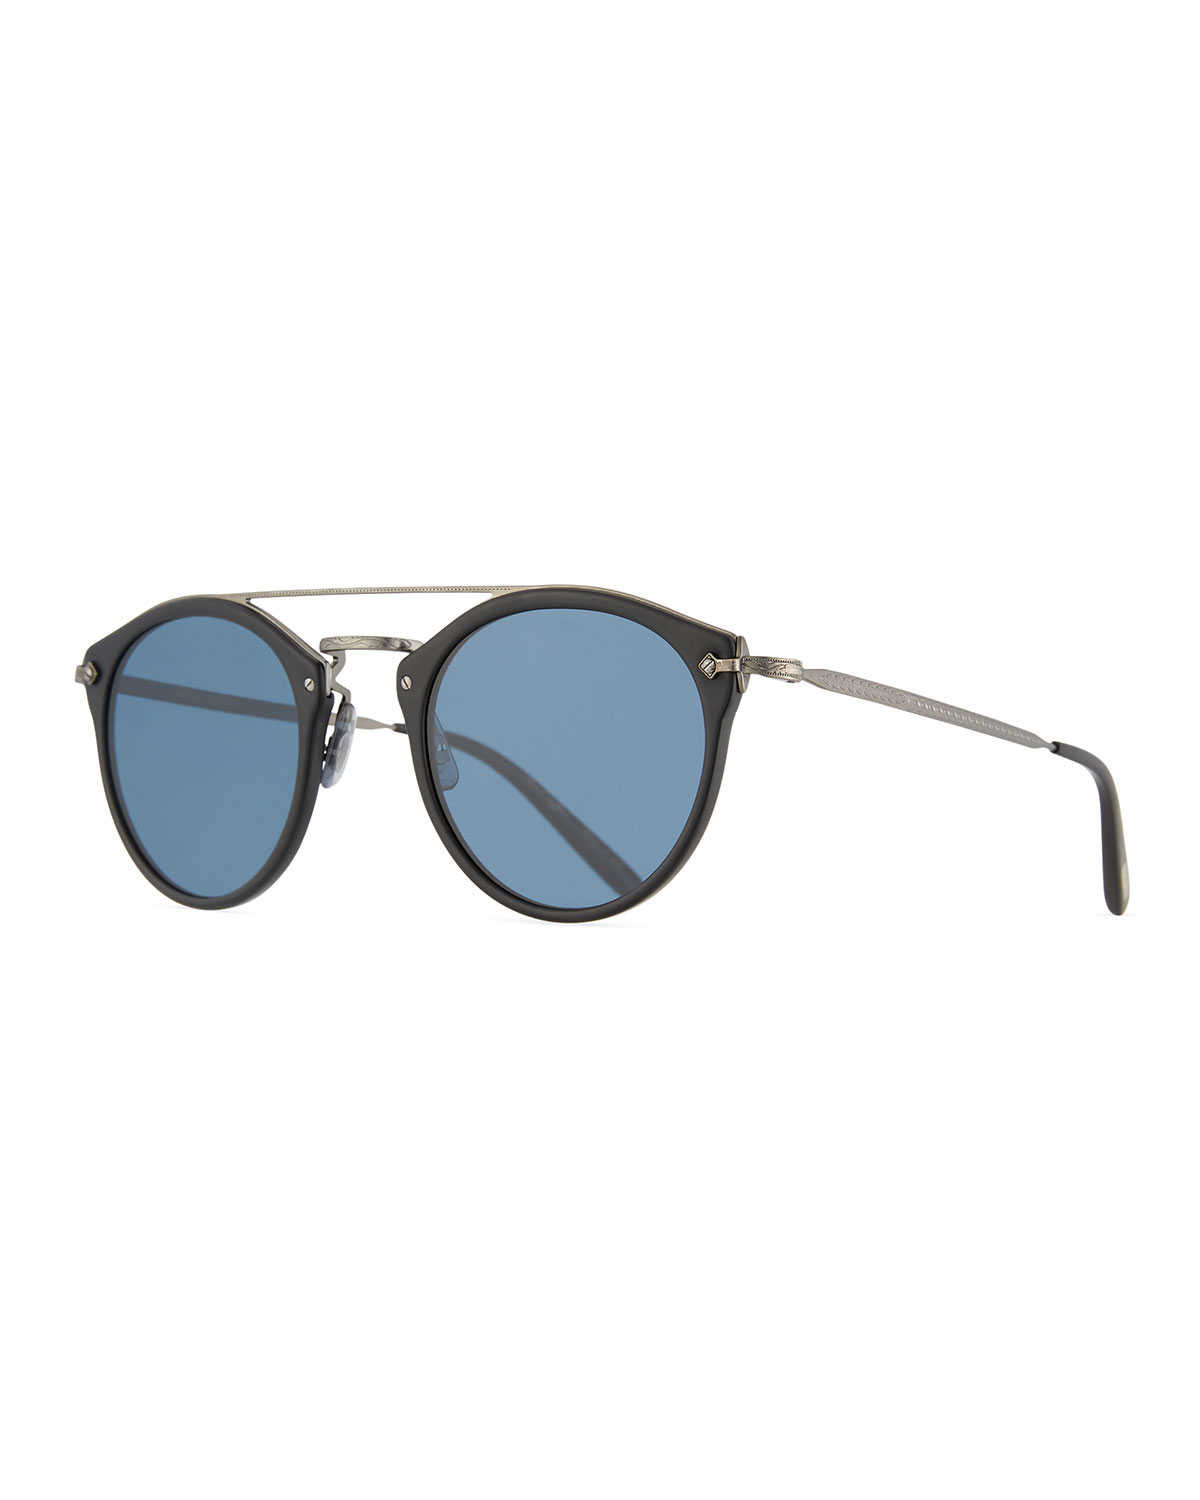 f5e82761eef Oliver Peoples Remick Vintage Brow-Bar Sunglasses